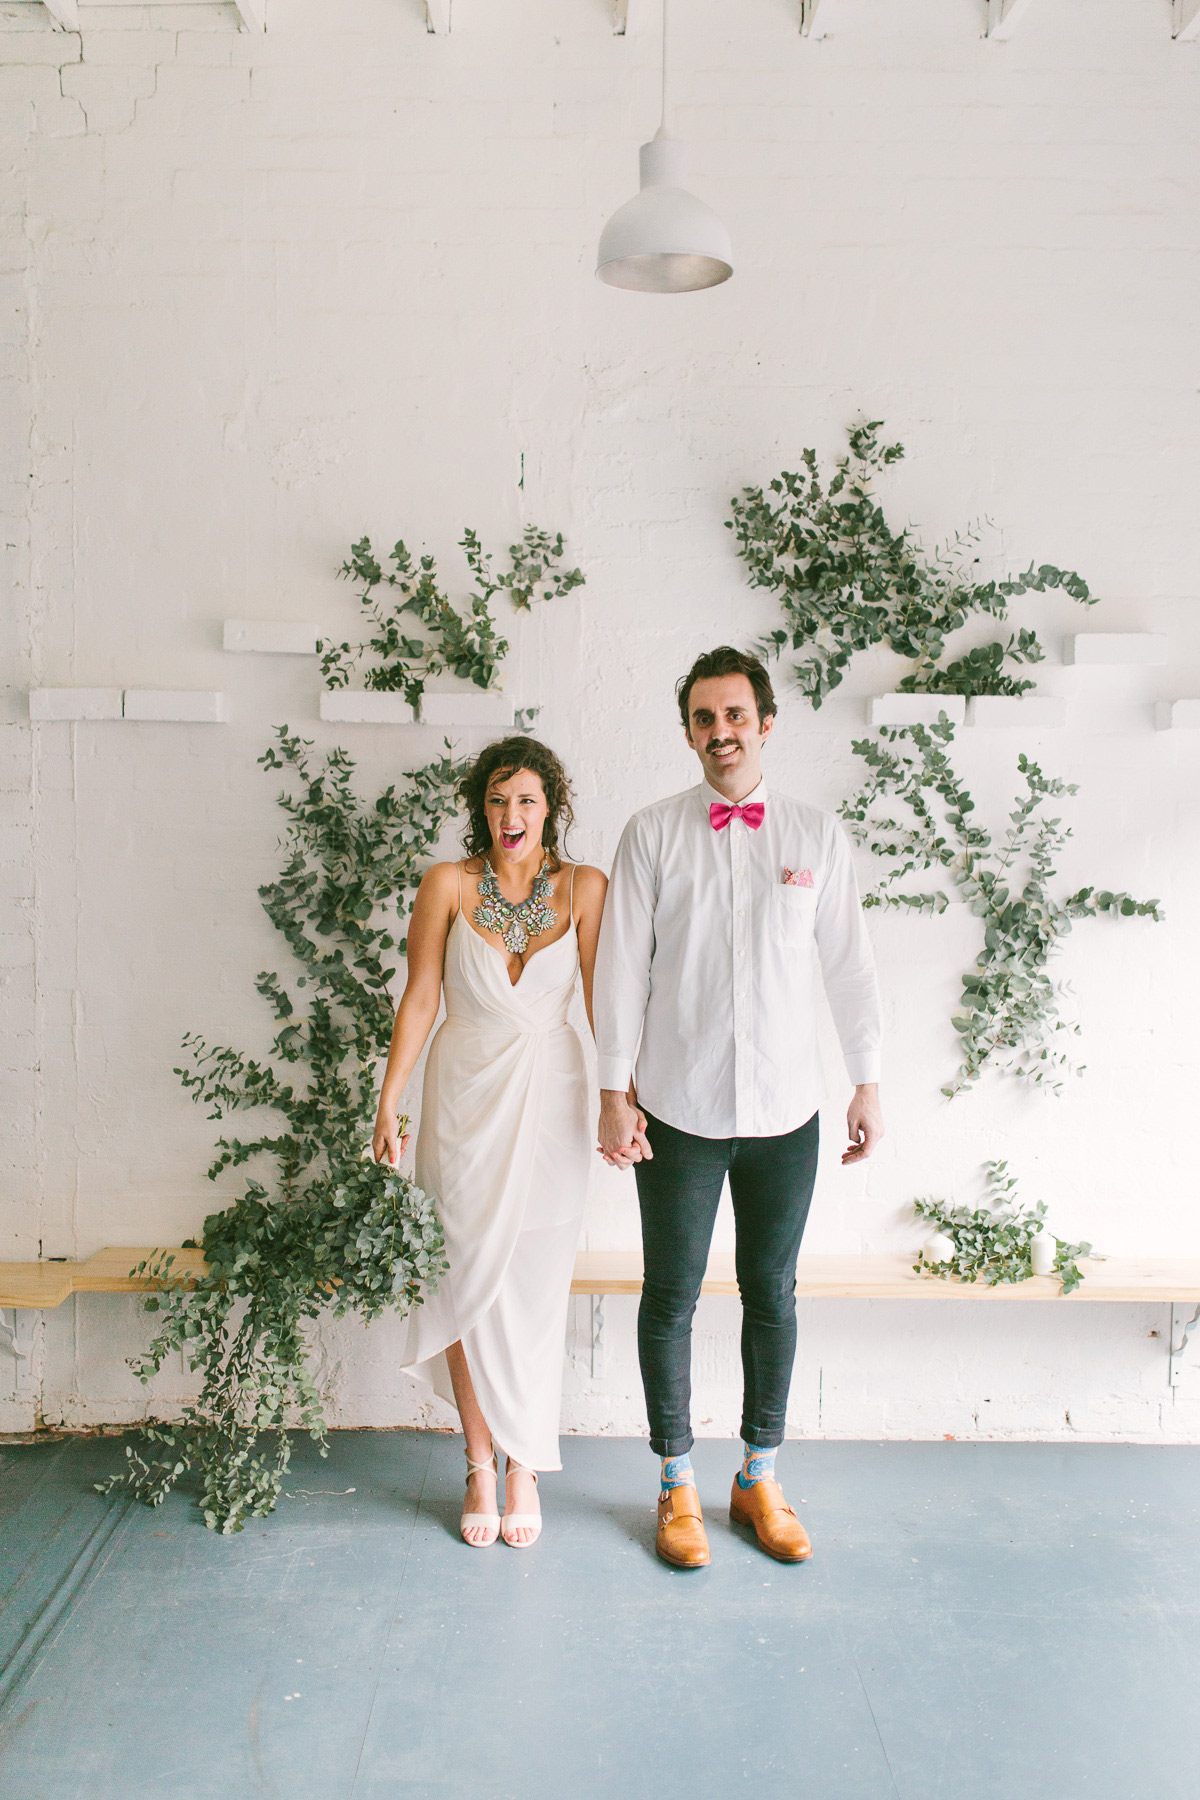 Melbourne-Alternative-Quirky-Natural-Candid-Wedding-Photography-Cafe-Wedding-Inspiration-25